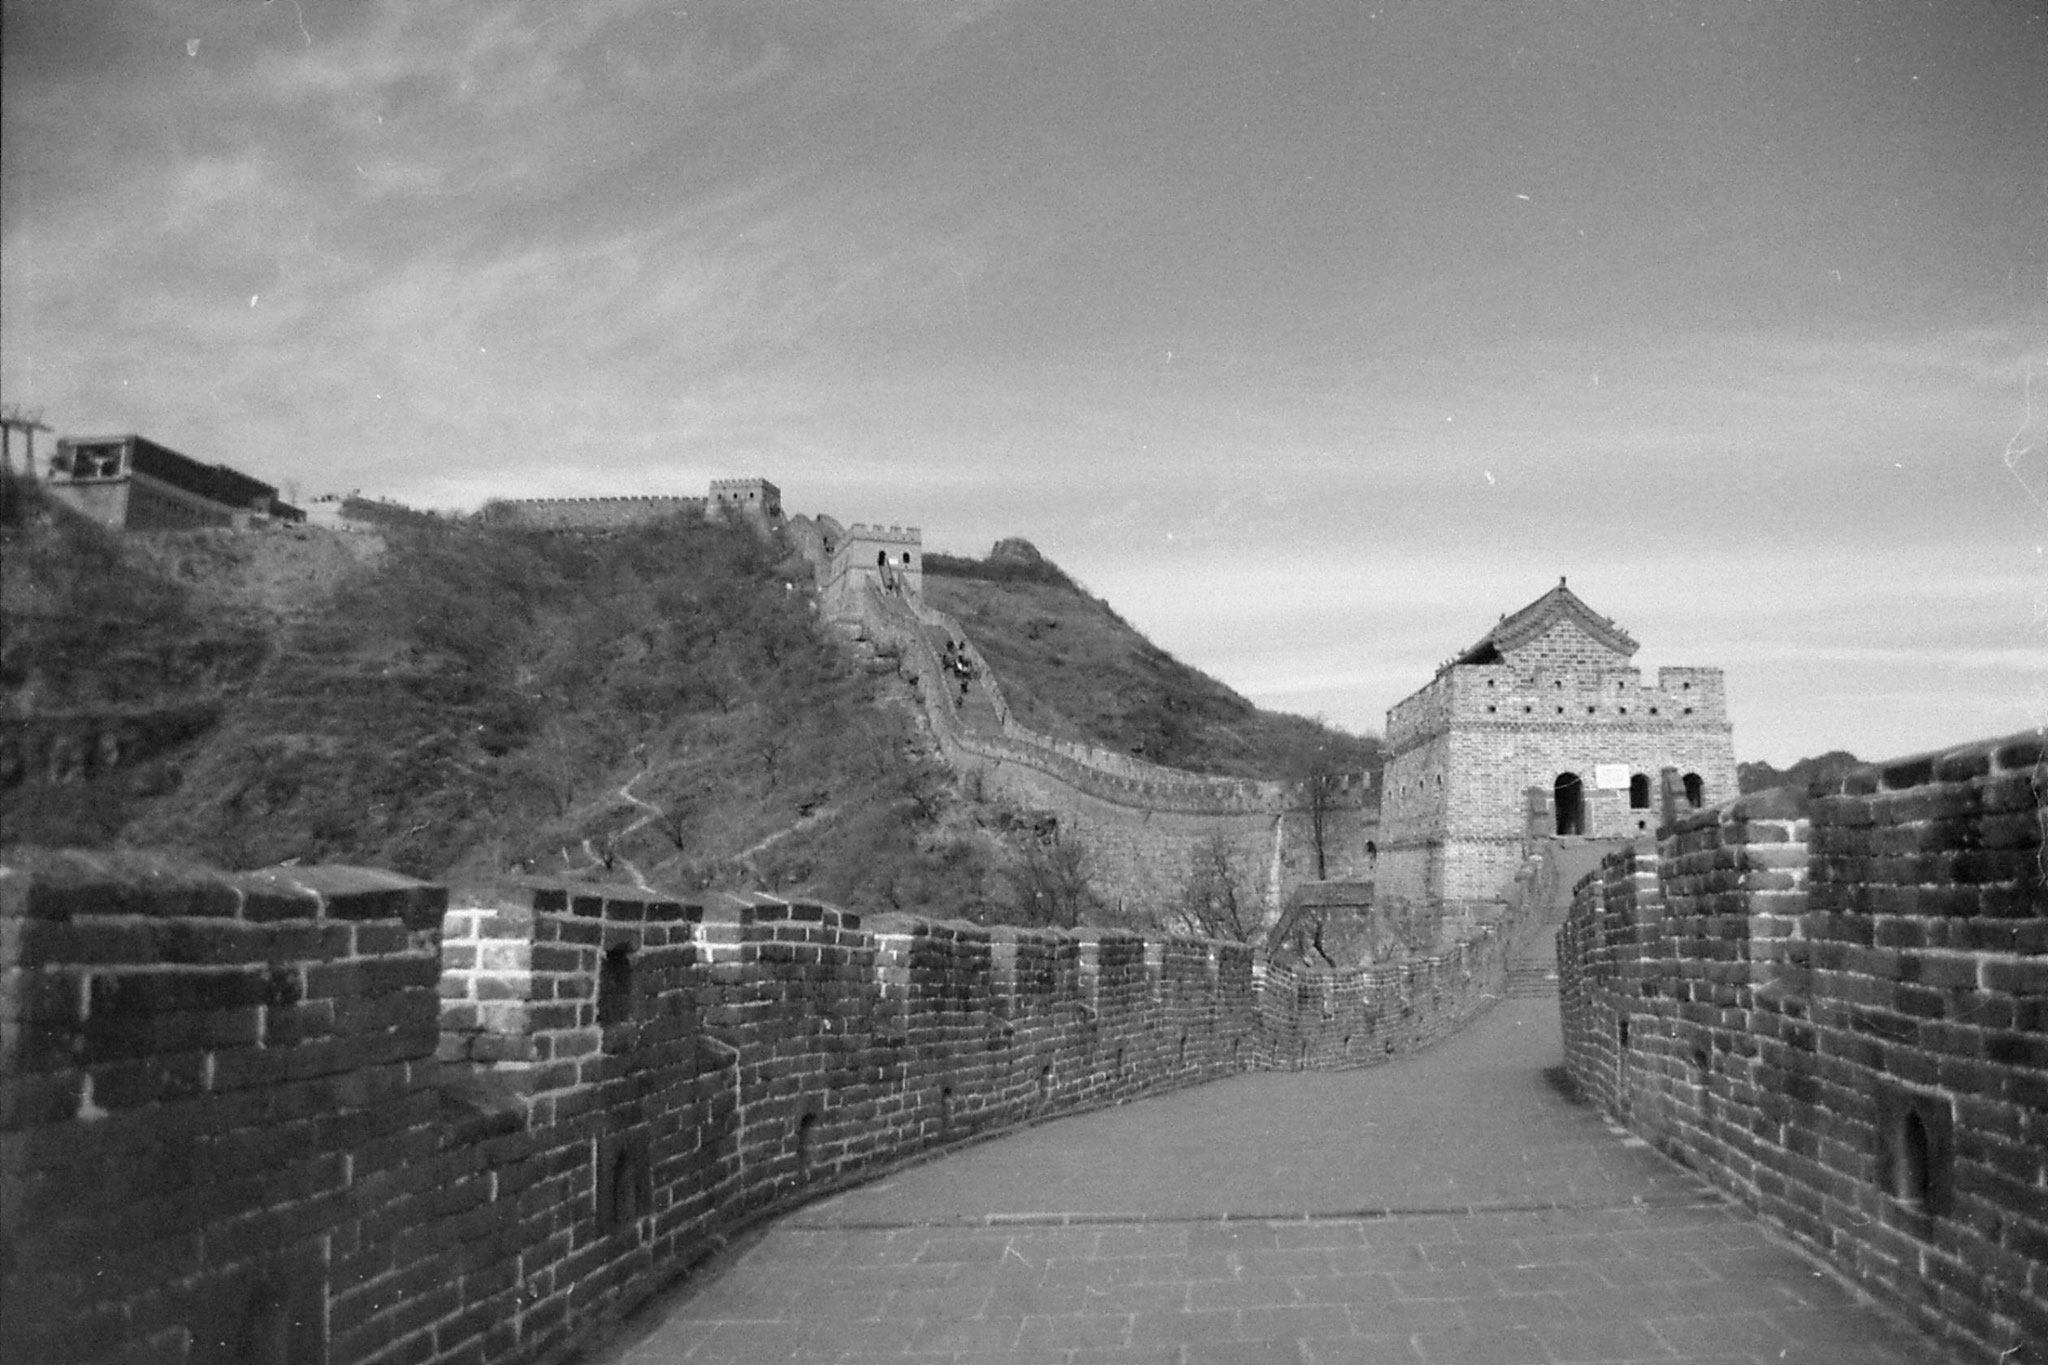 13/11/1988: 16: Great Wall at Mutianyu